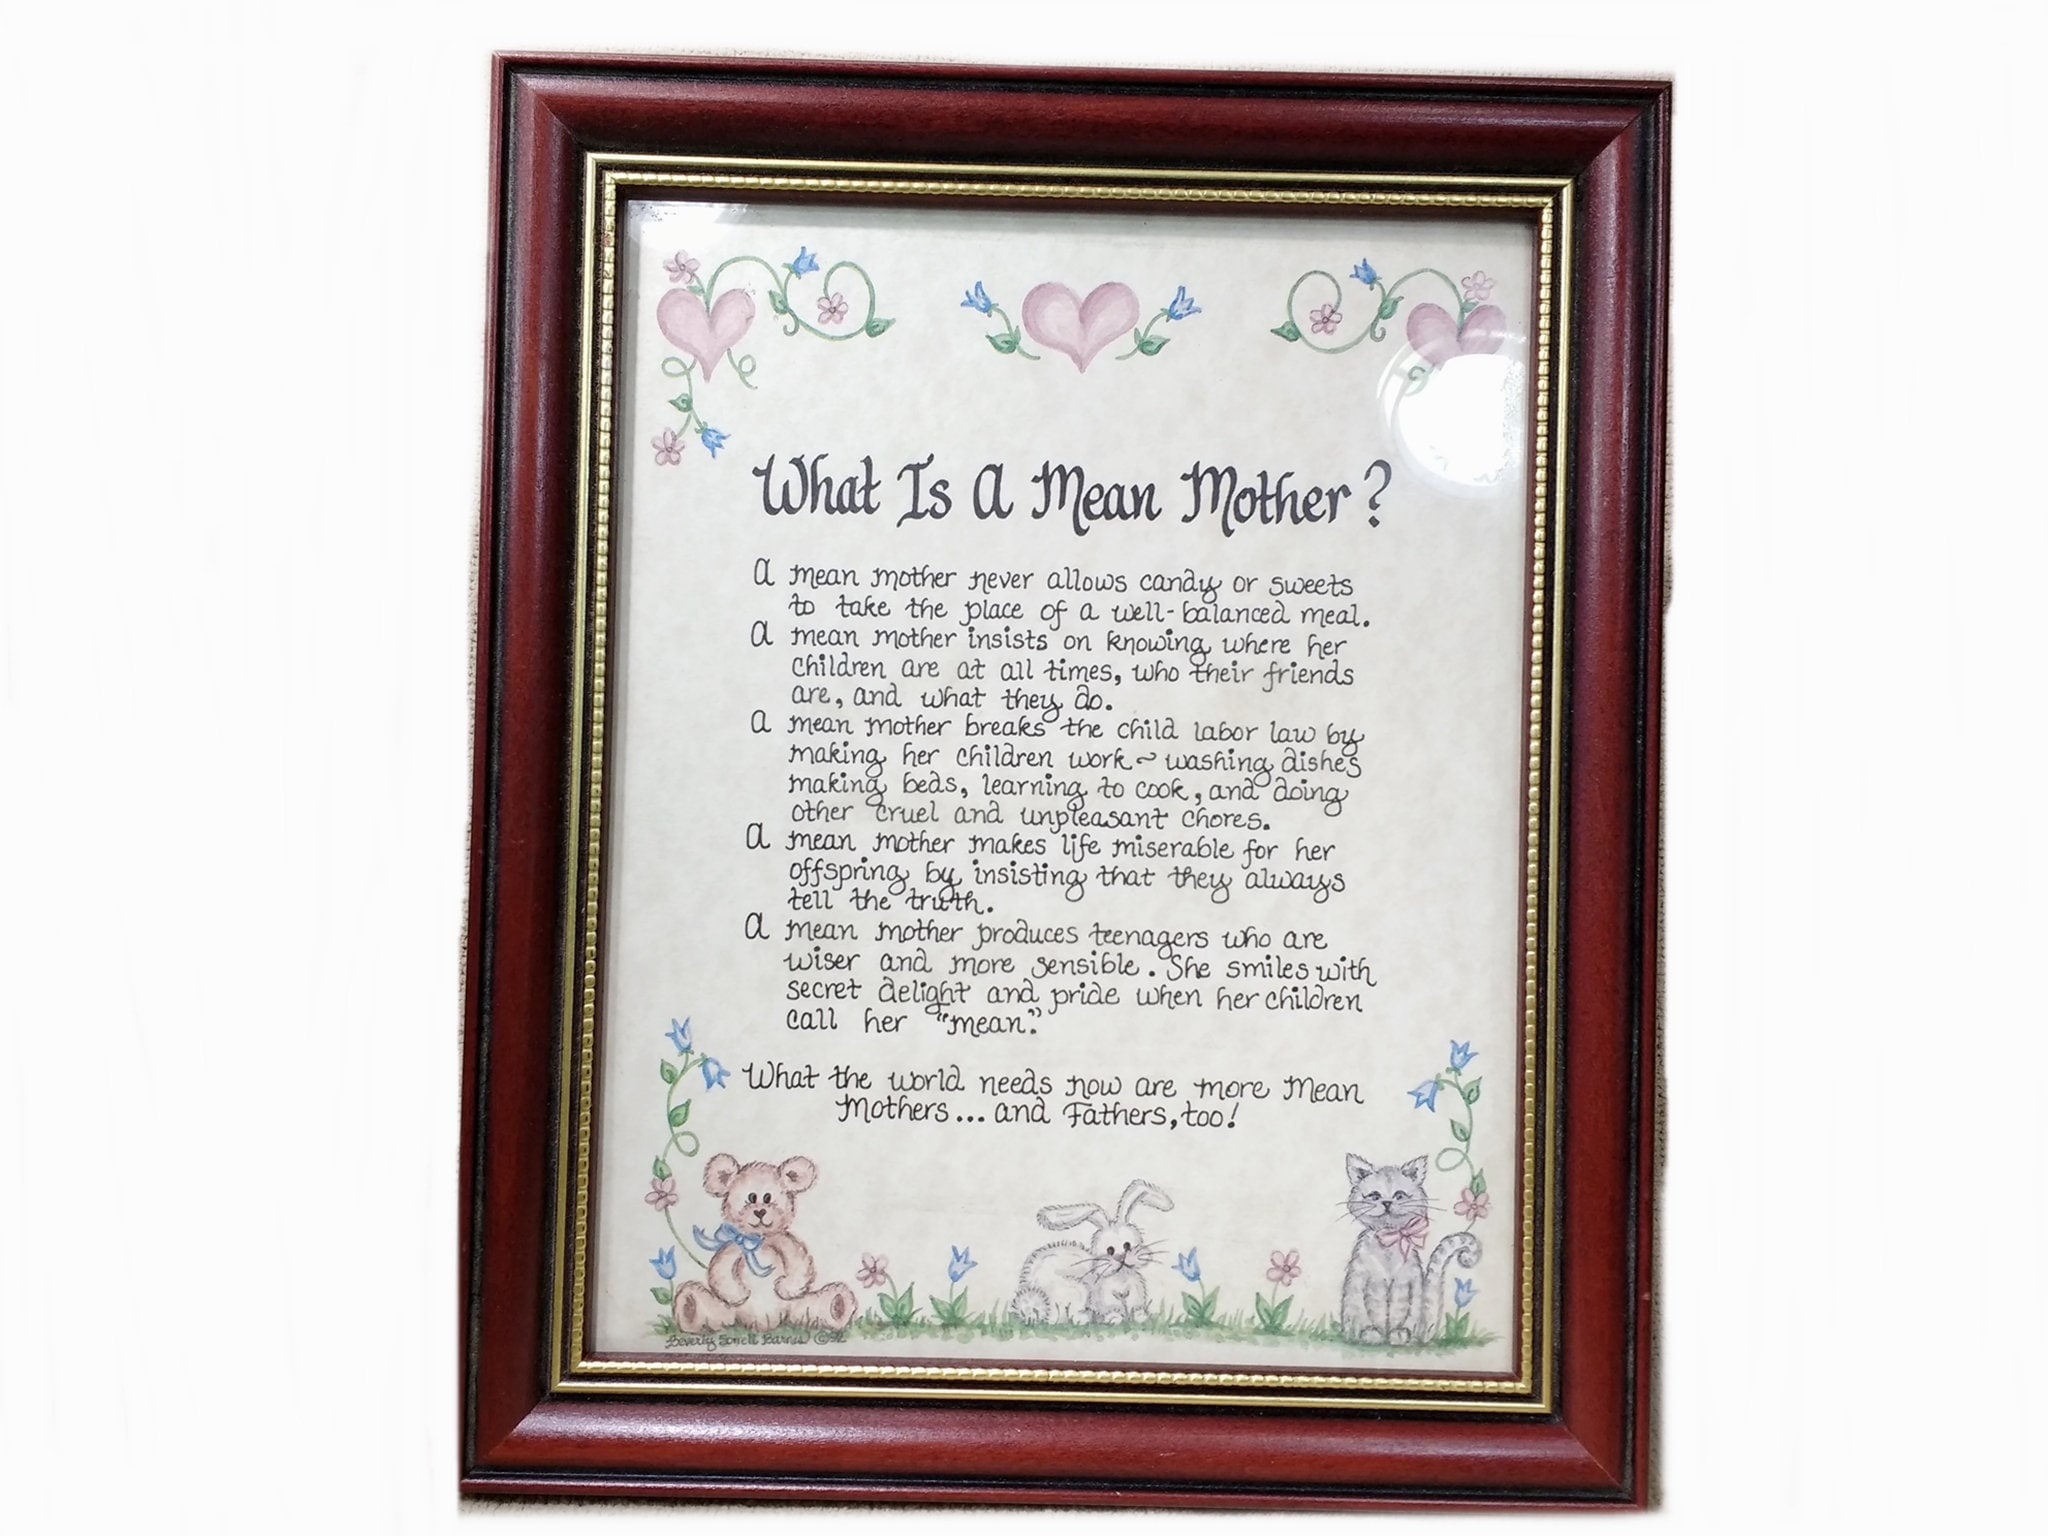 Mothers Day Gift From Daughter Son What Is A Mean Etsy